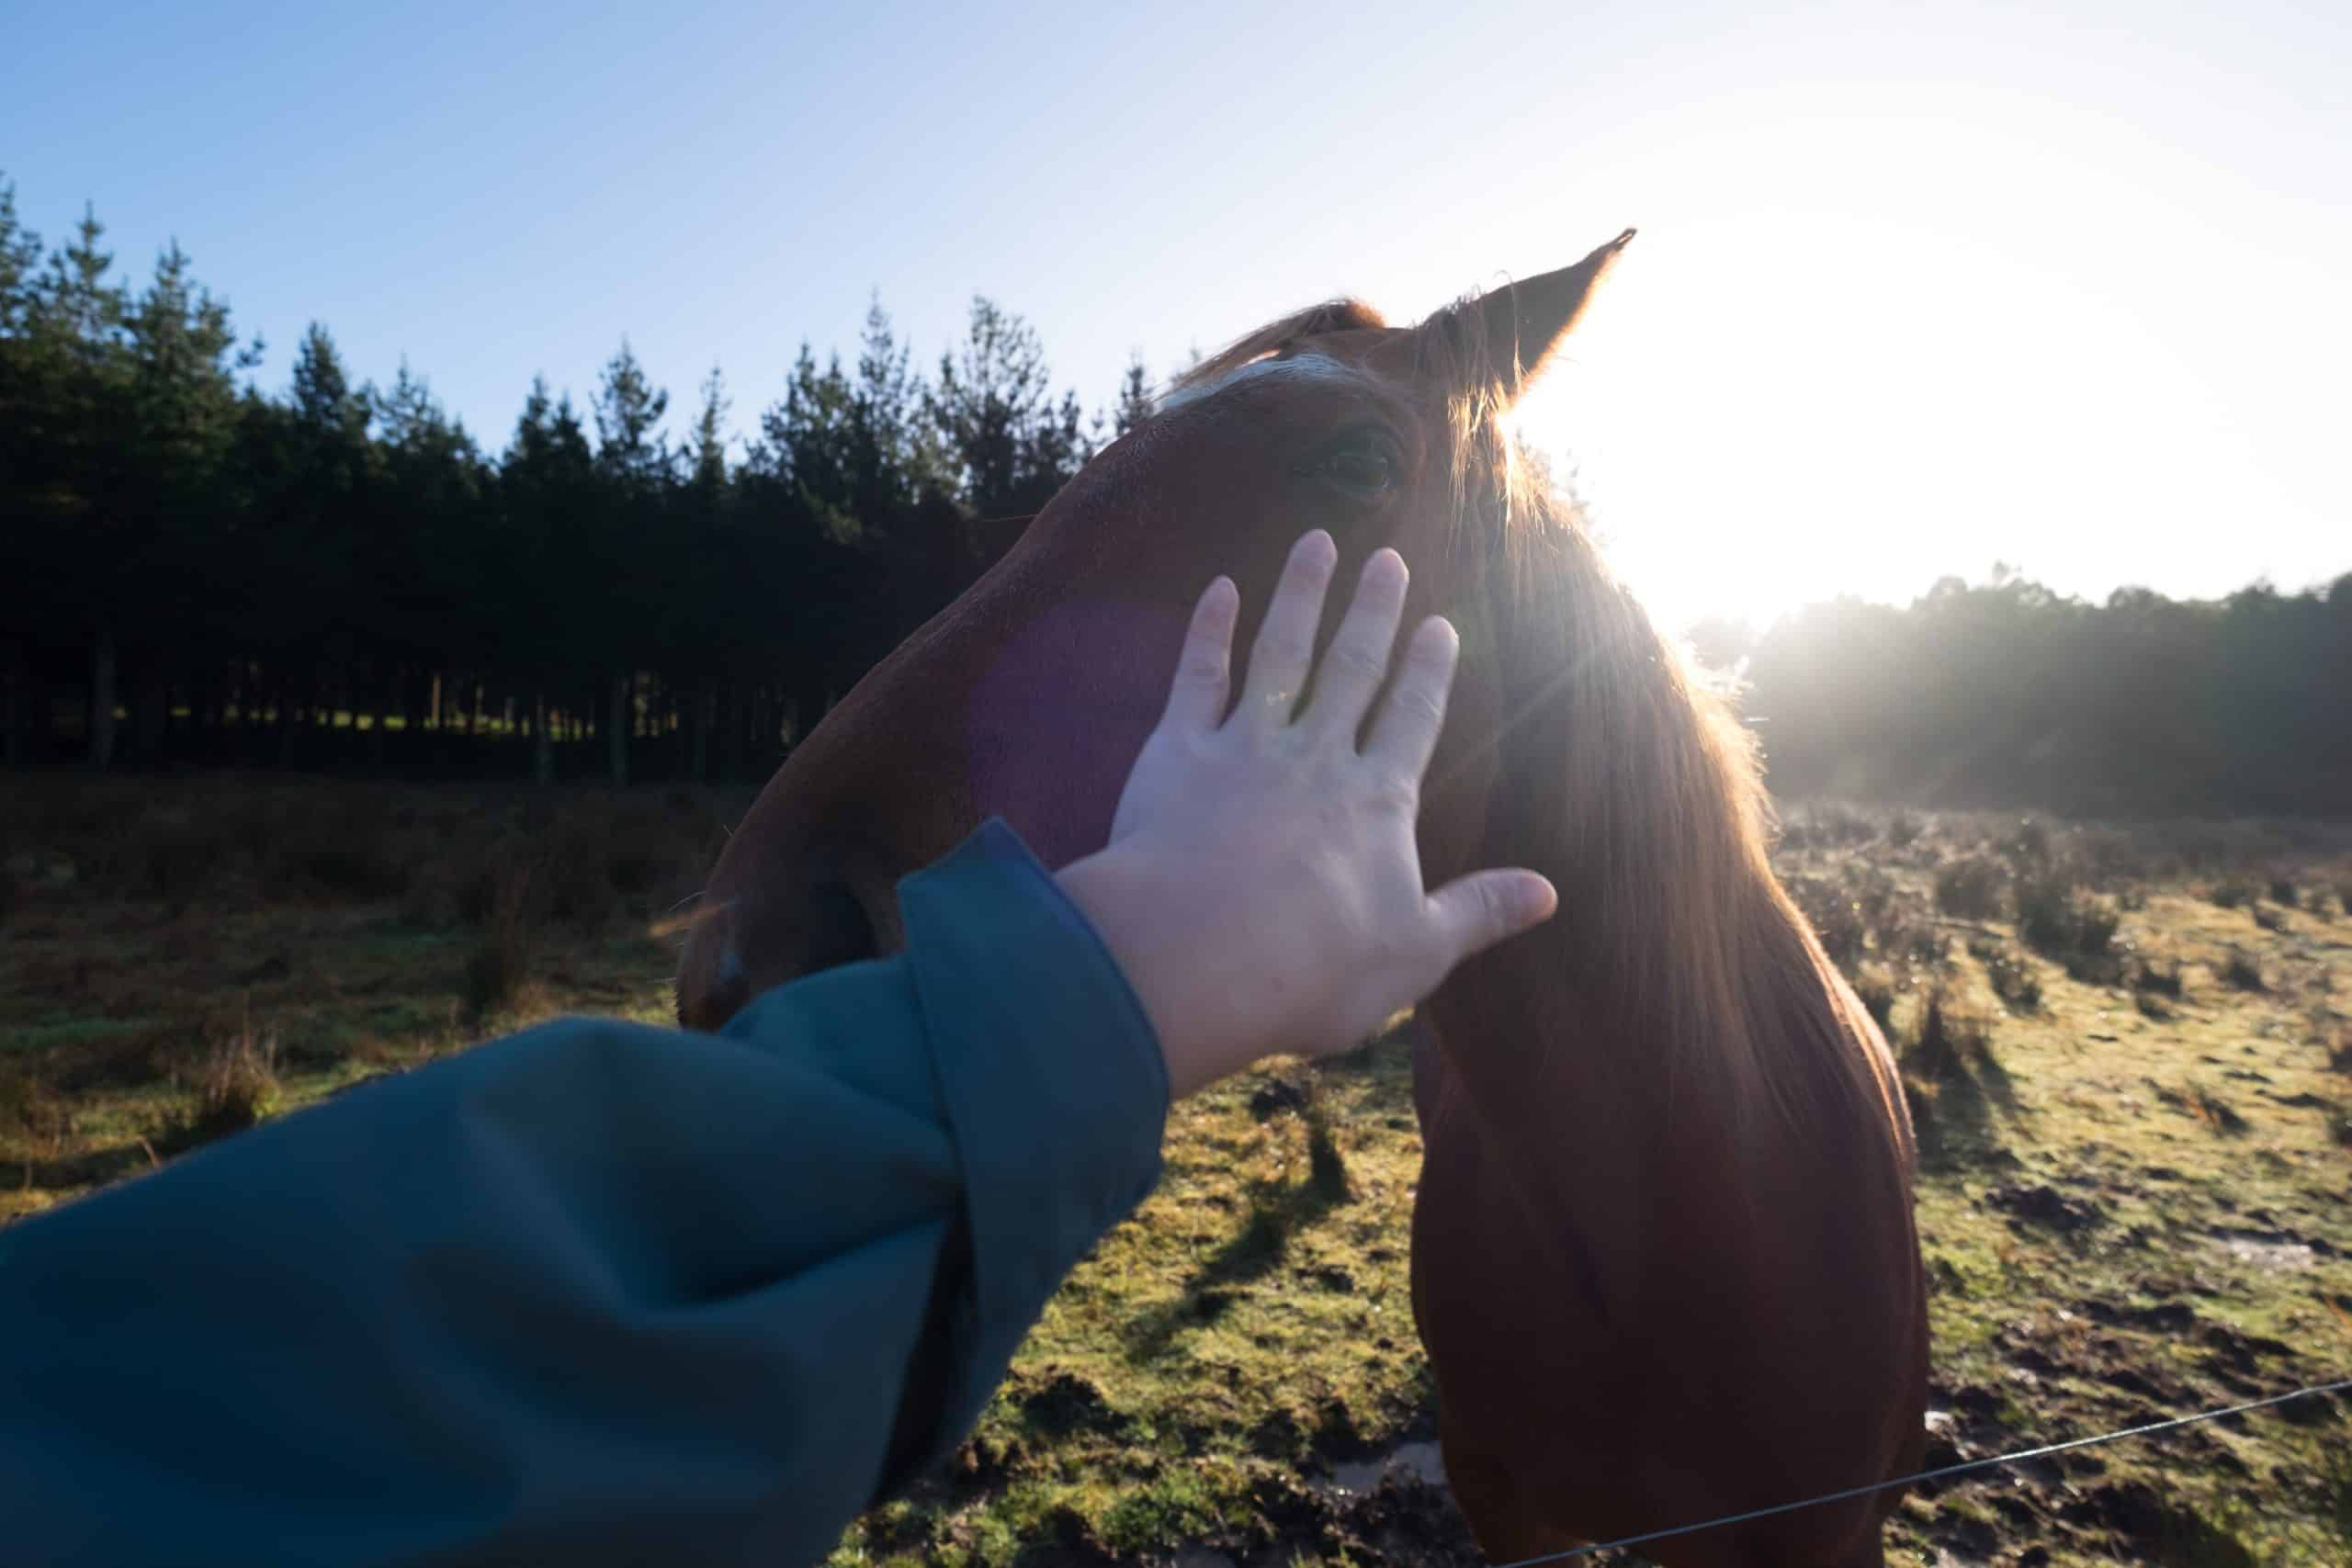 A human hand touches a horse. Animal and human beings are both inhabitants of mother earth. We should treat animals with respect and care just like we treat our own species.